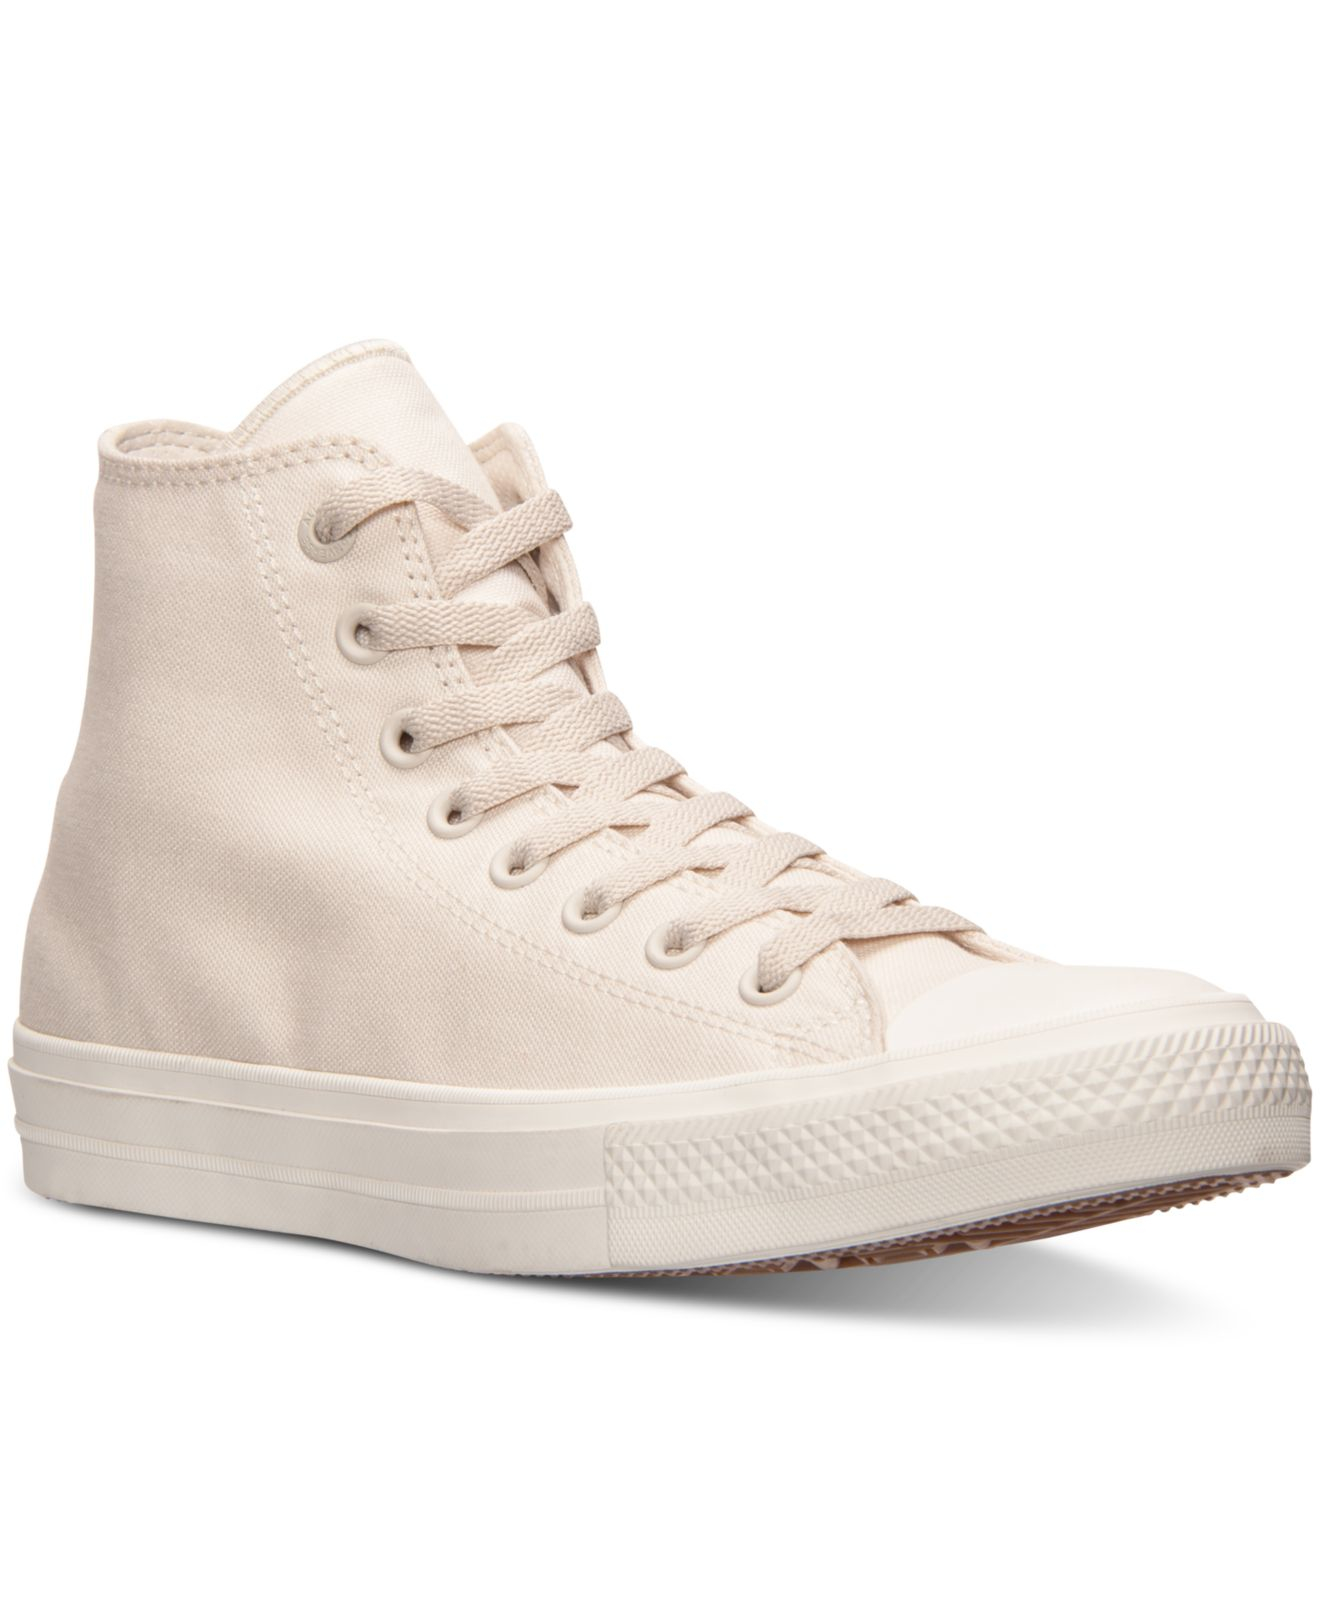 Converse Men's Monochrome Chuck Taylor Hi Top Casual Sneakers from Finish Line 8j42mr1u